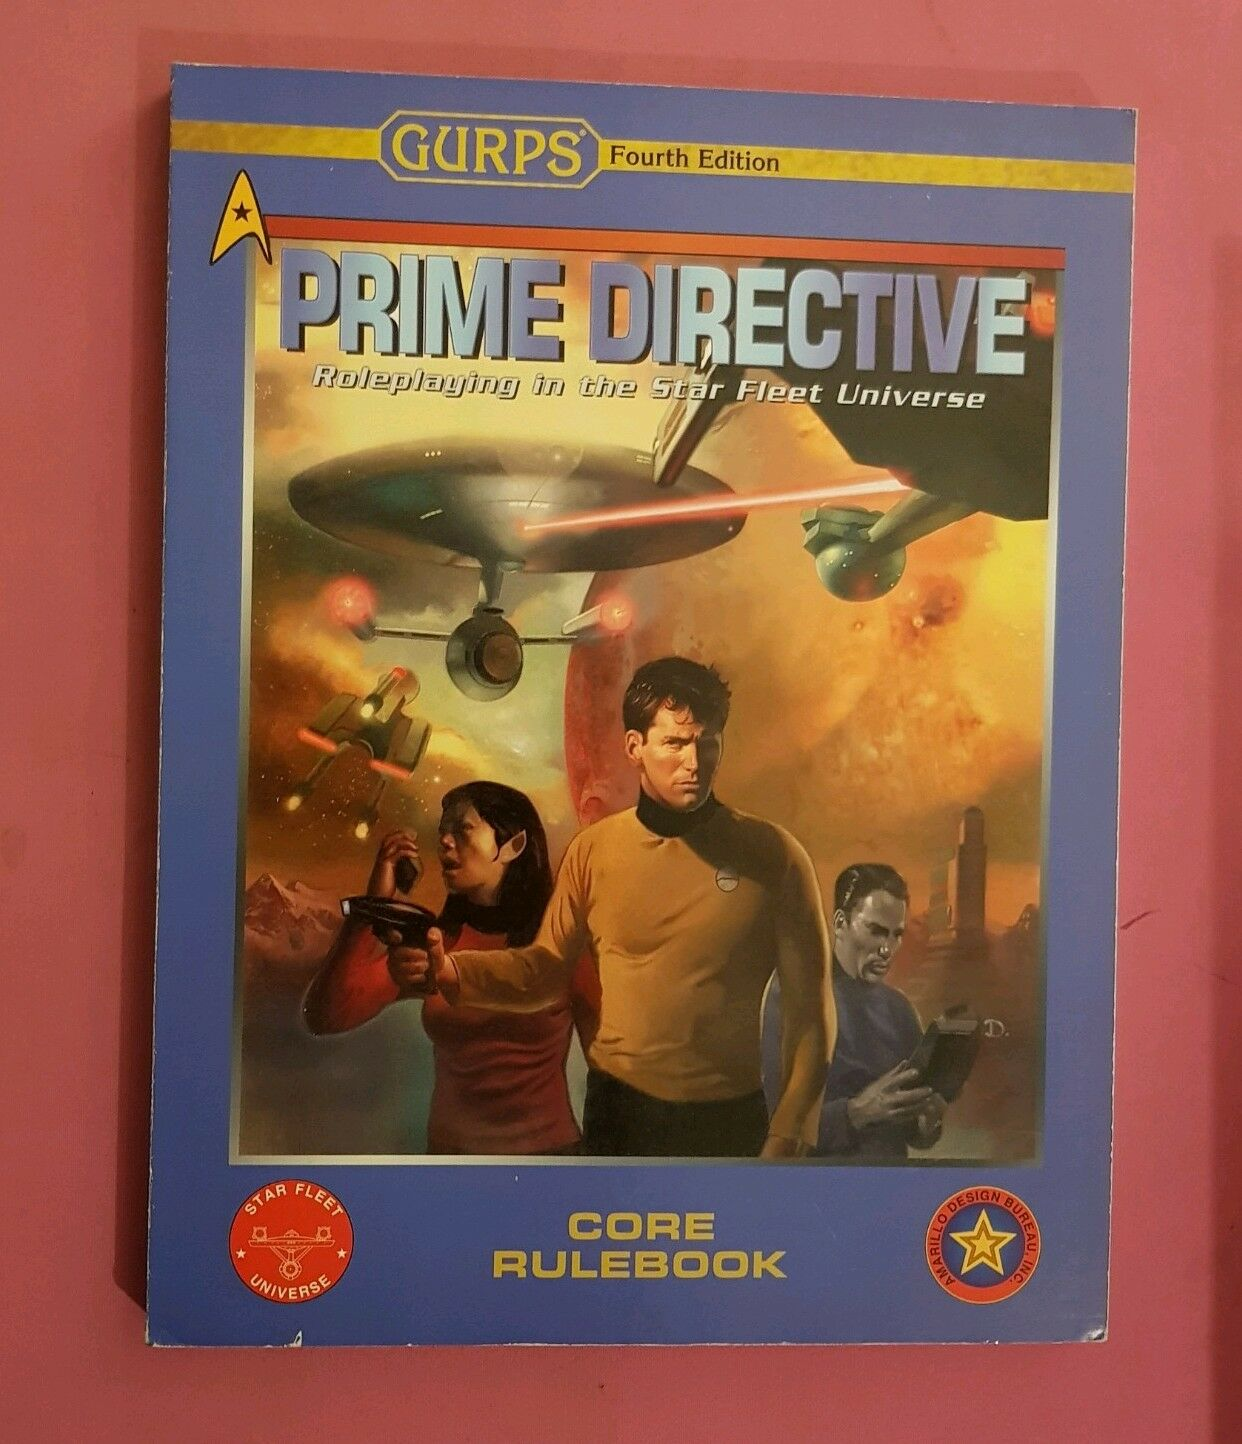 GURPS 4TH EDITION PRIME DIRECTIVE - COMPLETE GAME RPG ROLEPLAYING STAR TREK SFB